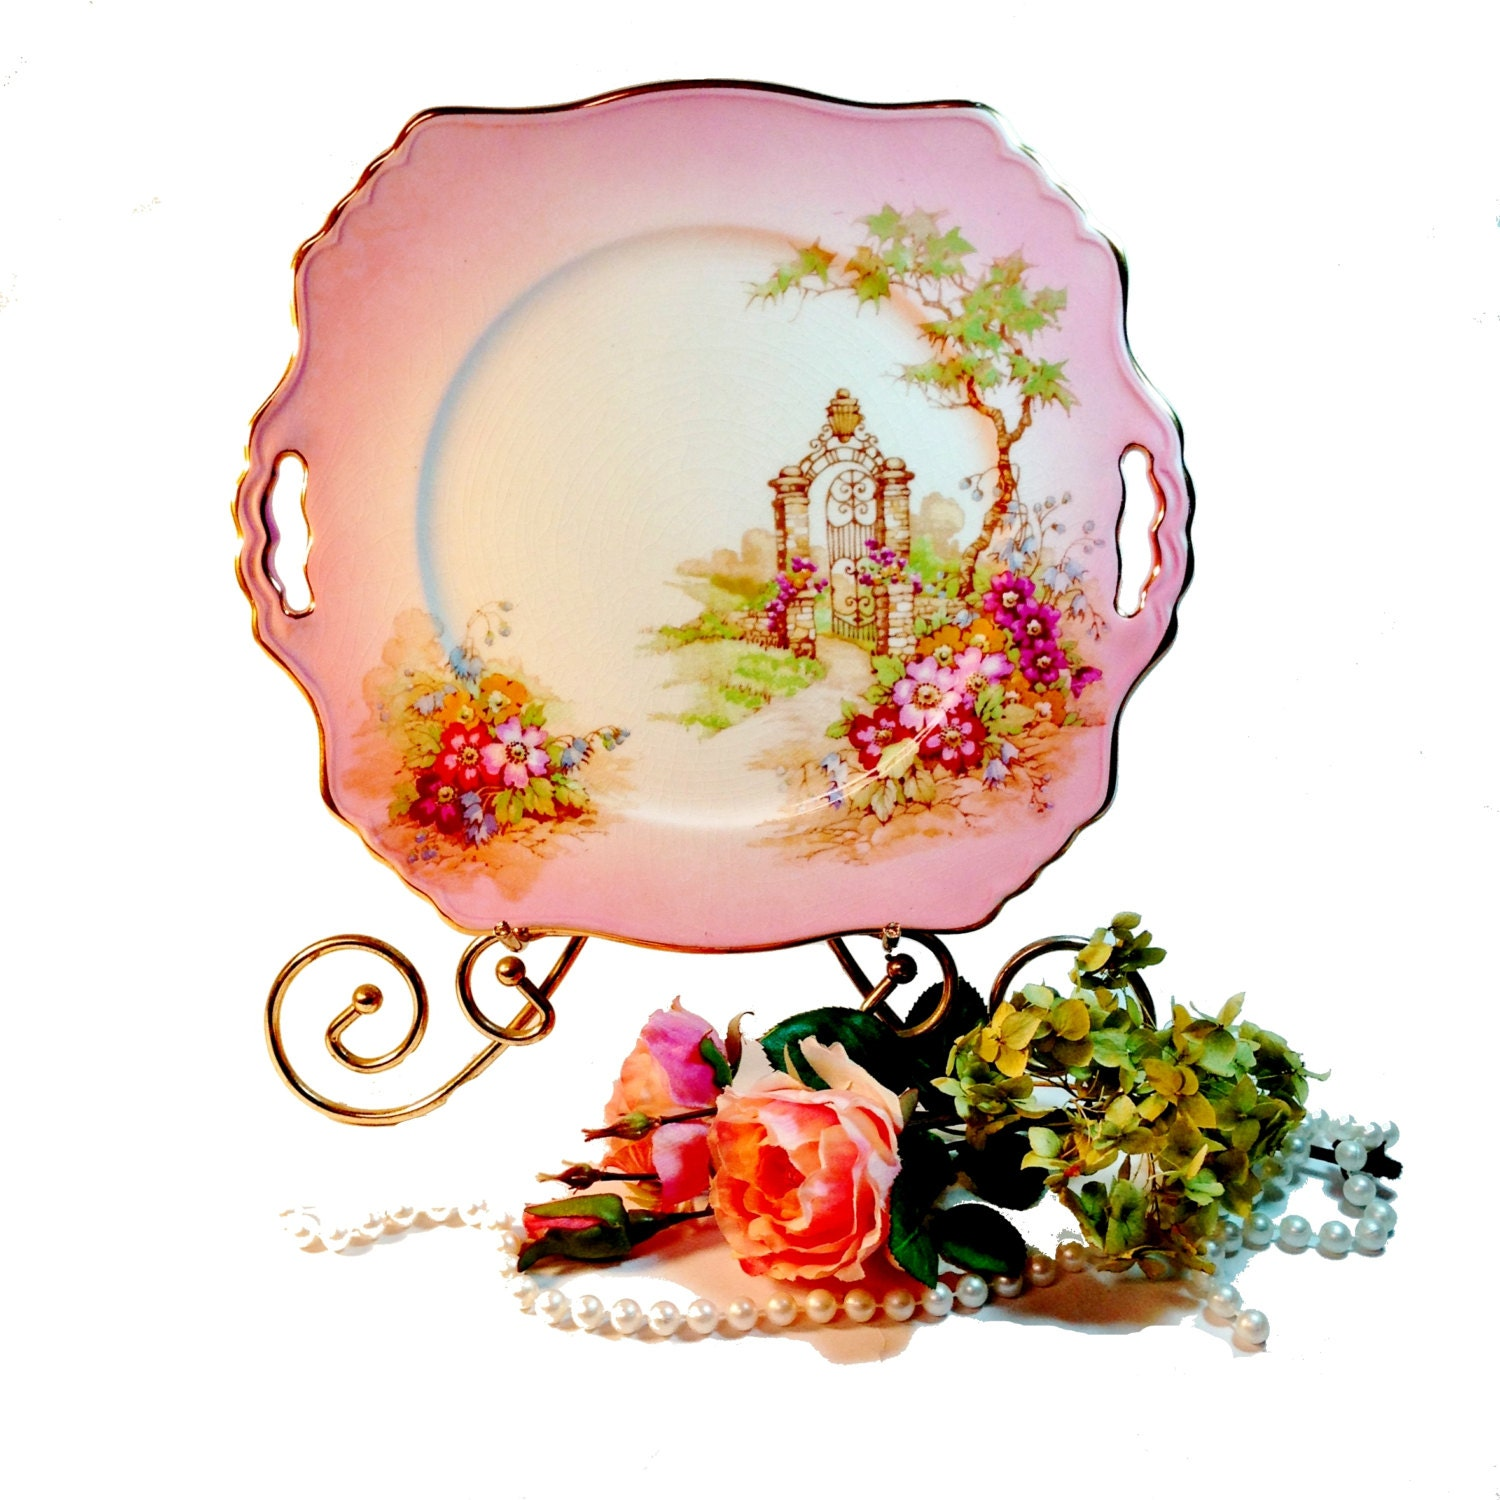 Vintage Pink Transferware Plate or Platter Gateway by Royal Winton, Valentine's Day Decor - northandsouthshabby